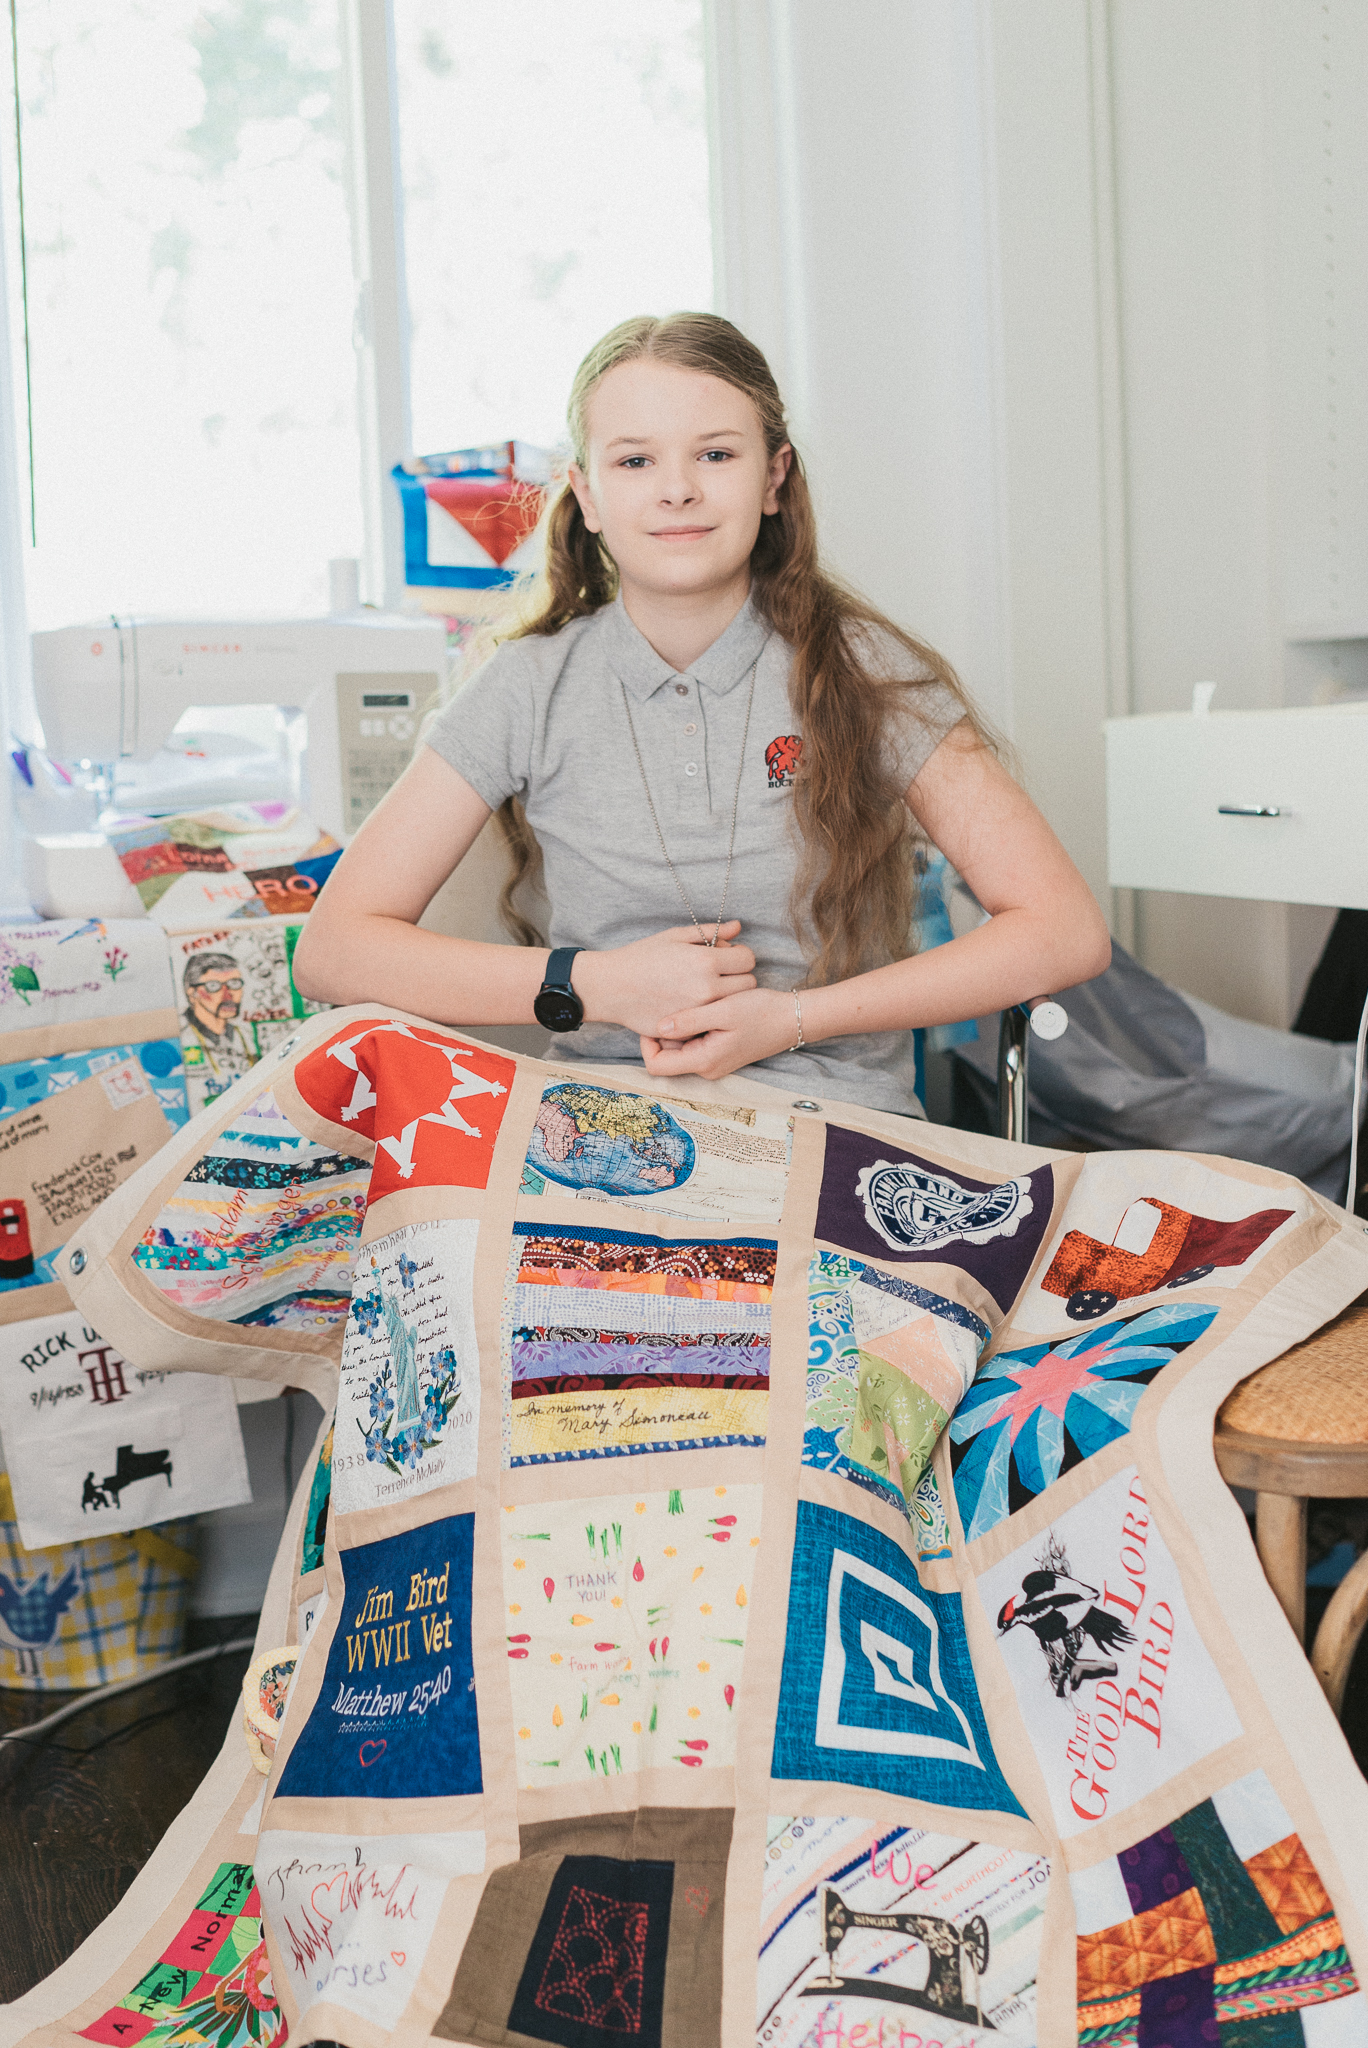 Eighth grader Madeleine Fugate sits in a chair with a panel from the COVID-19 memorial quilt draped over her lap